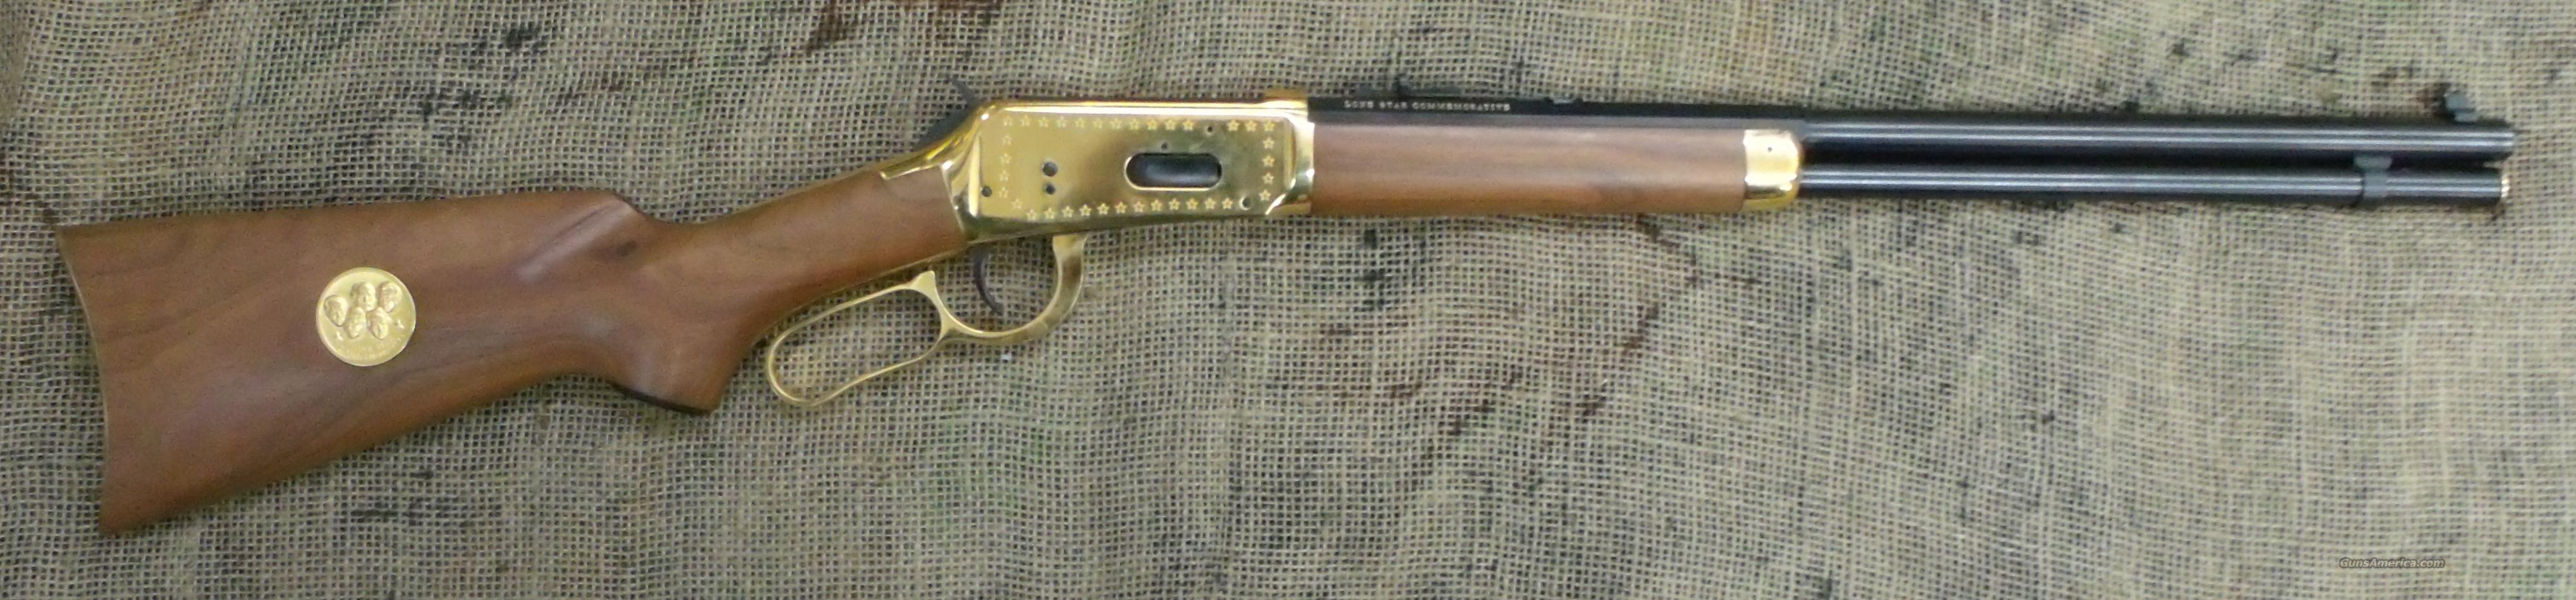 WINCHESTER 1894 Lone Star Comm. Carbine 30-30 Cal.  Guns > Rifles > Winchester Rifle Commemoratives